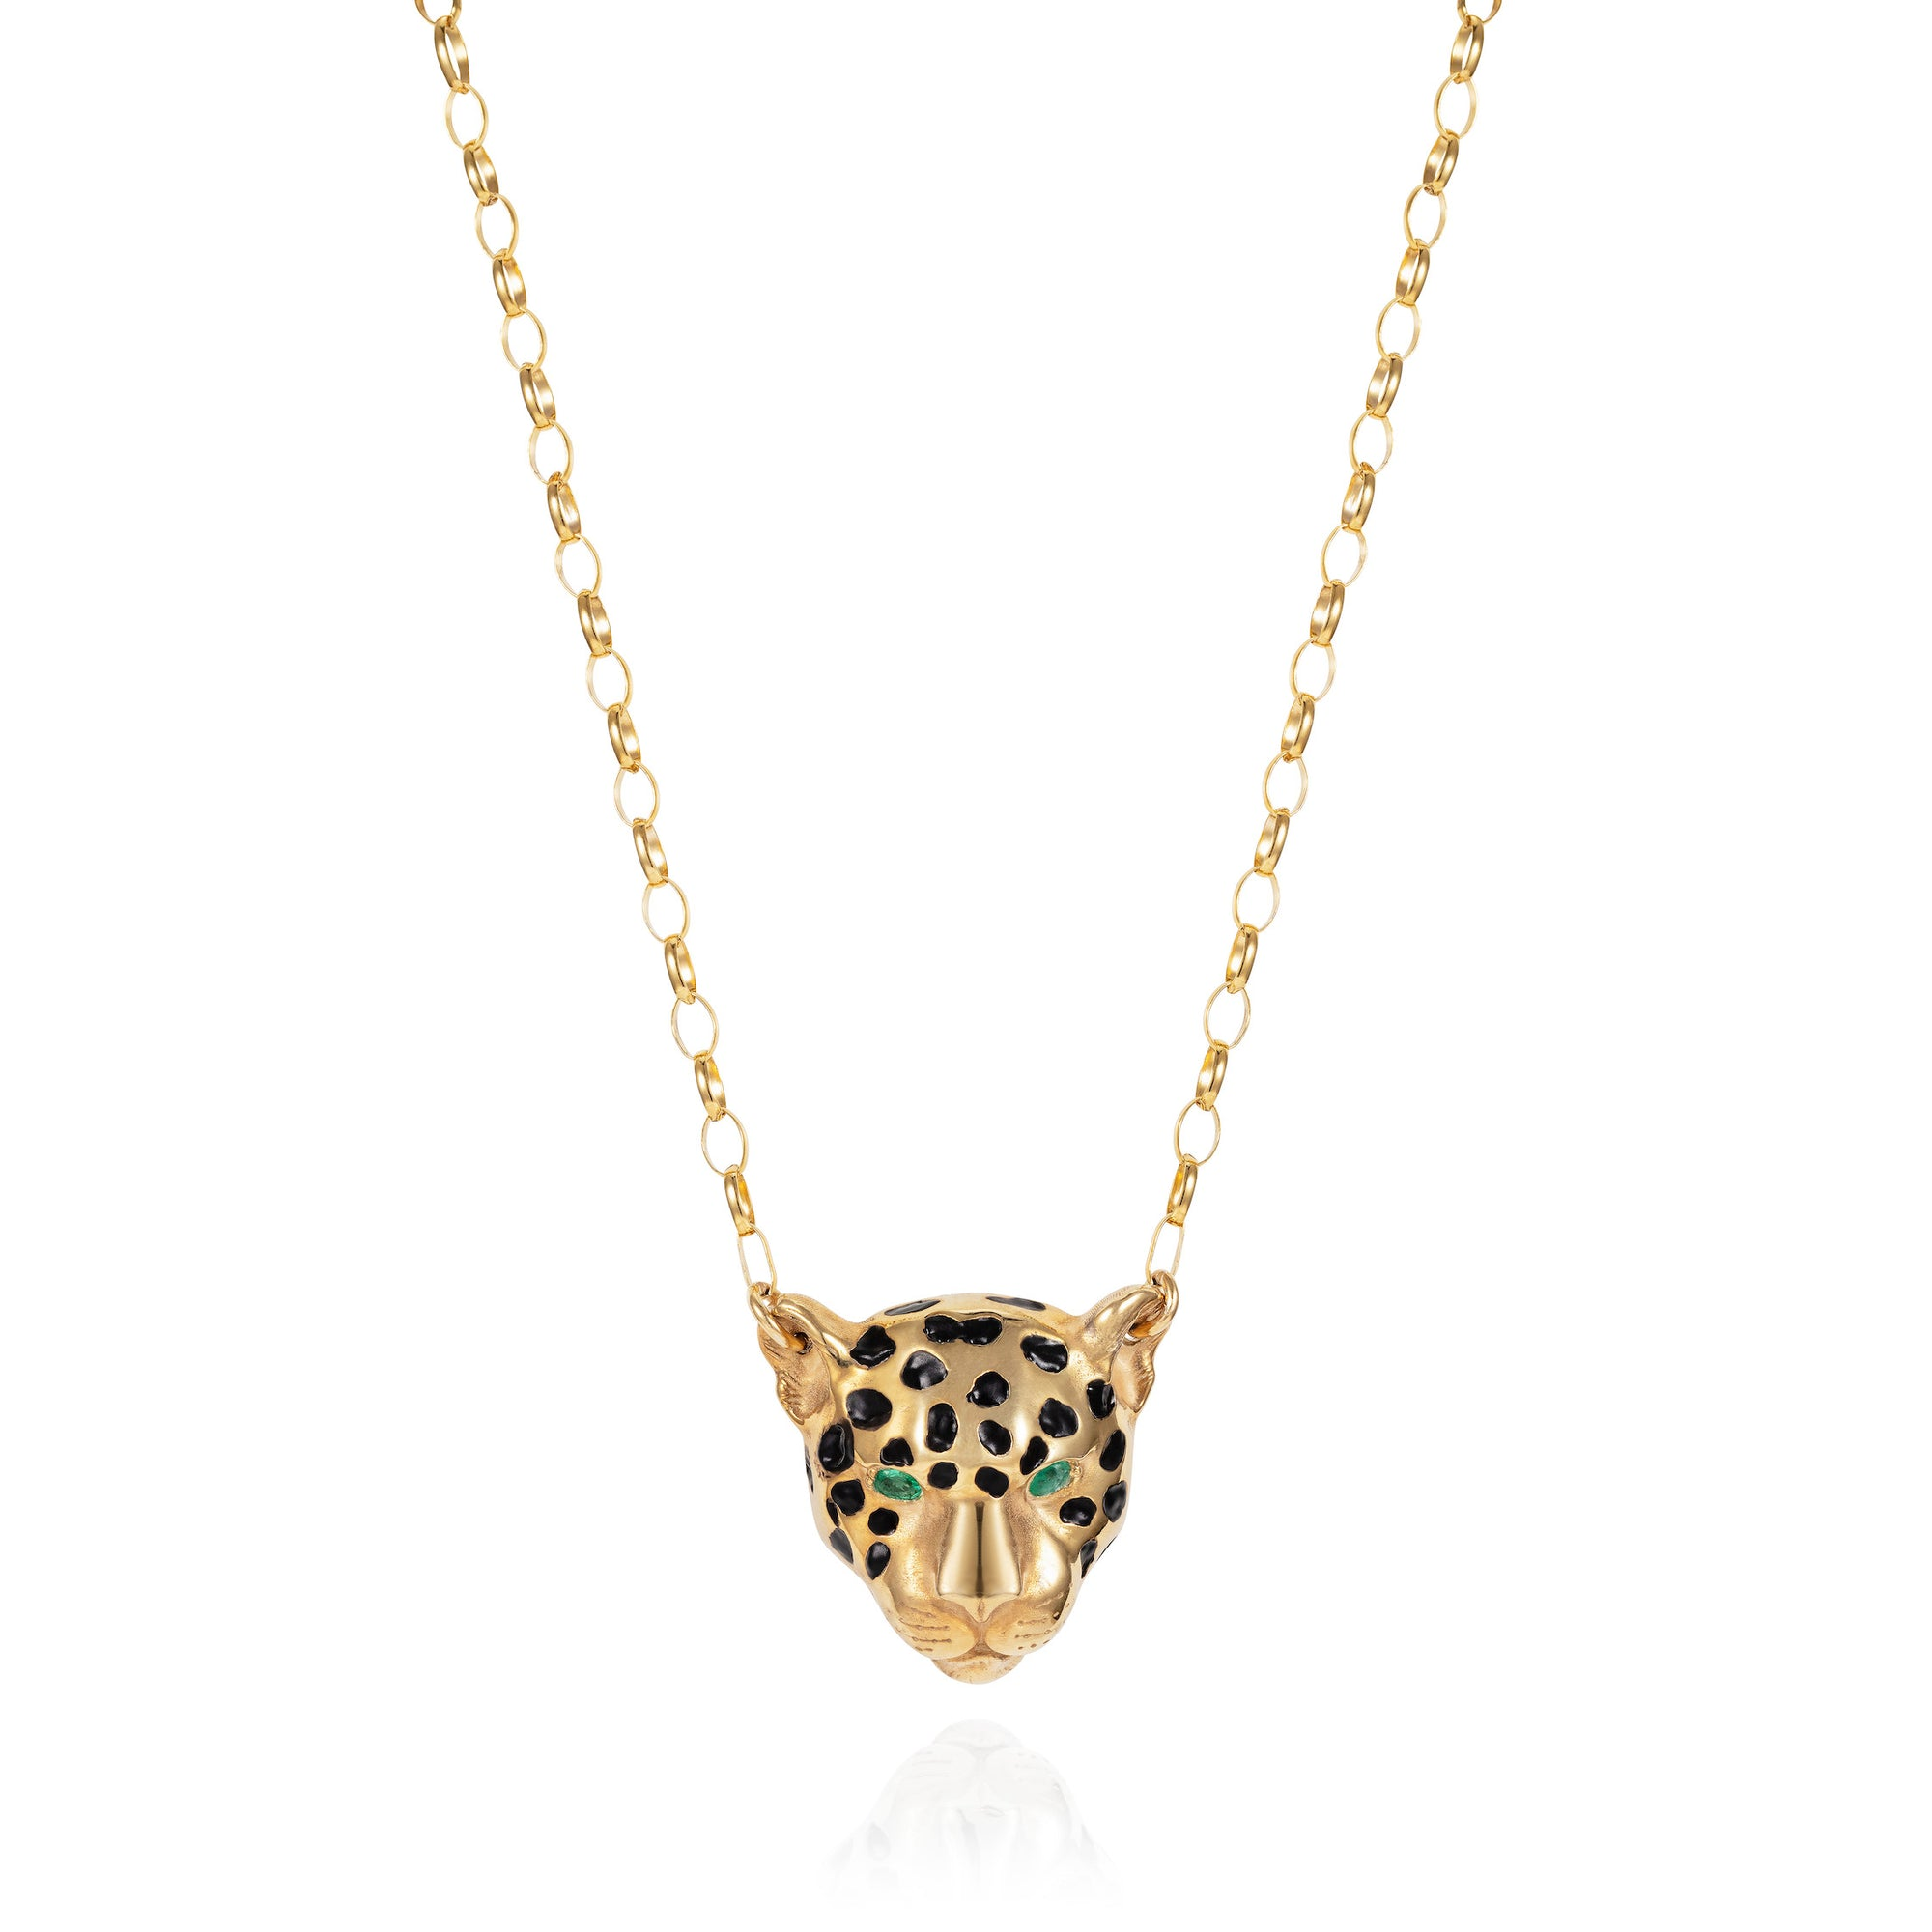 Jaguar Necklace by Amanda Marcucci